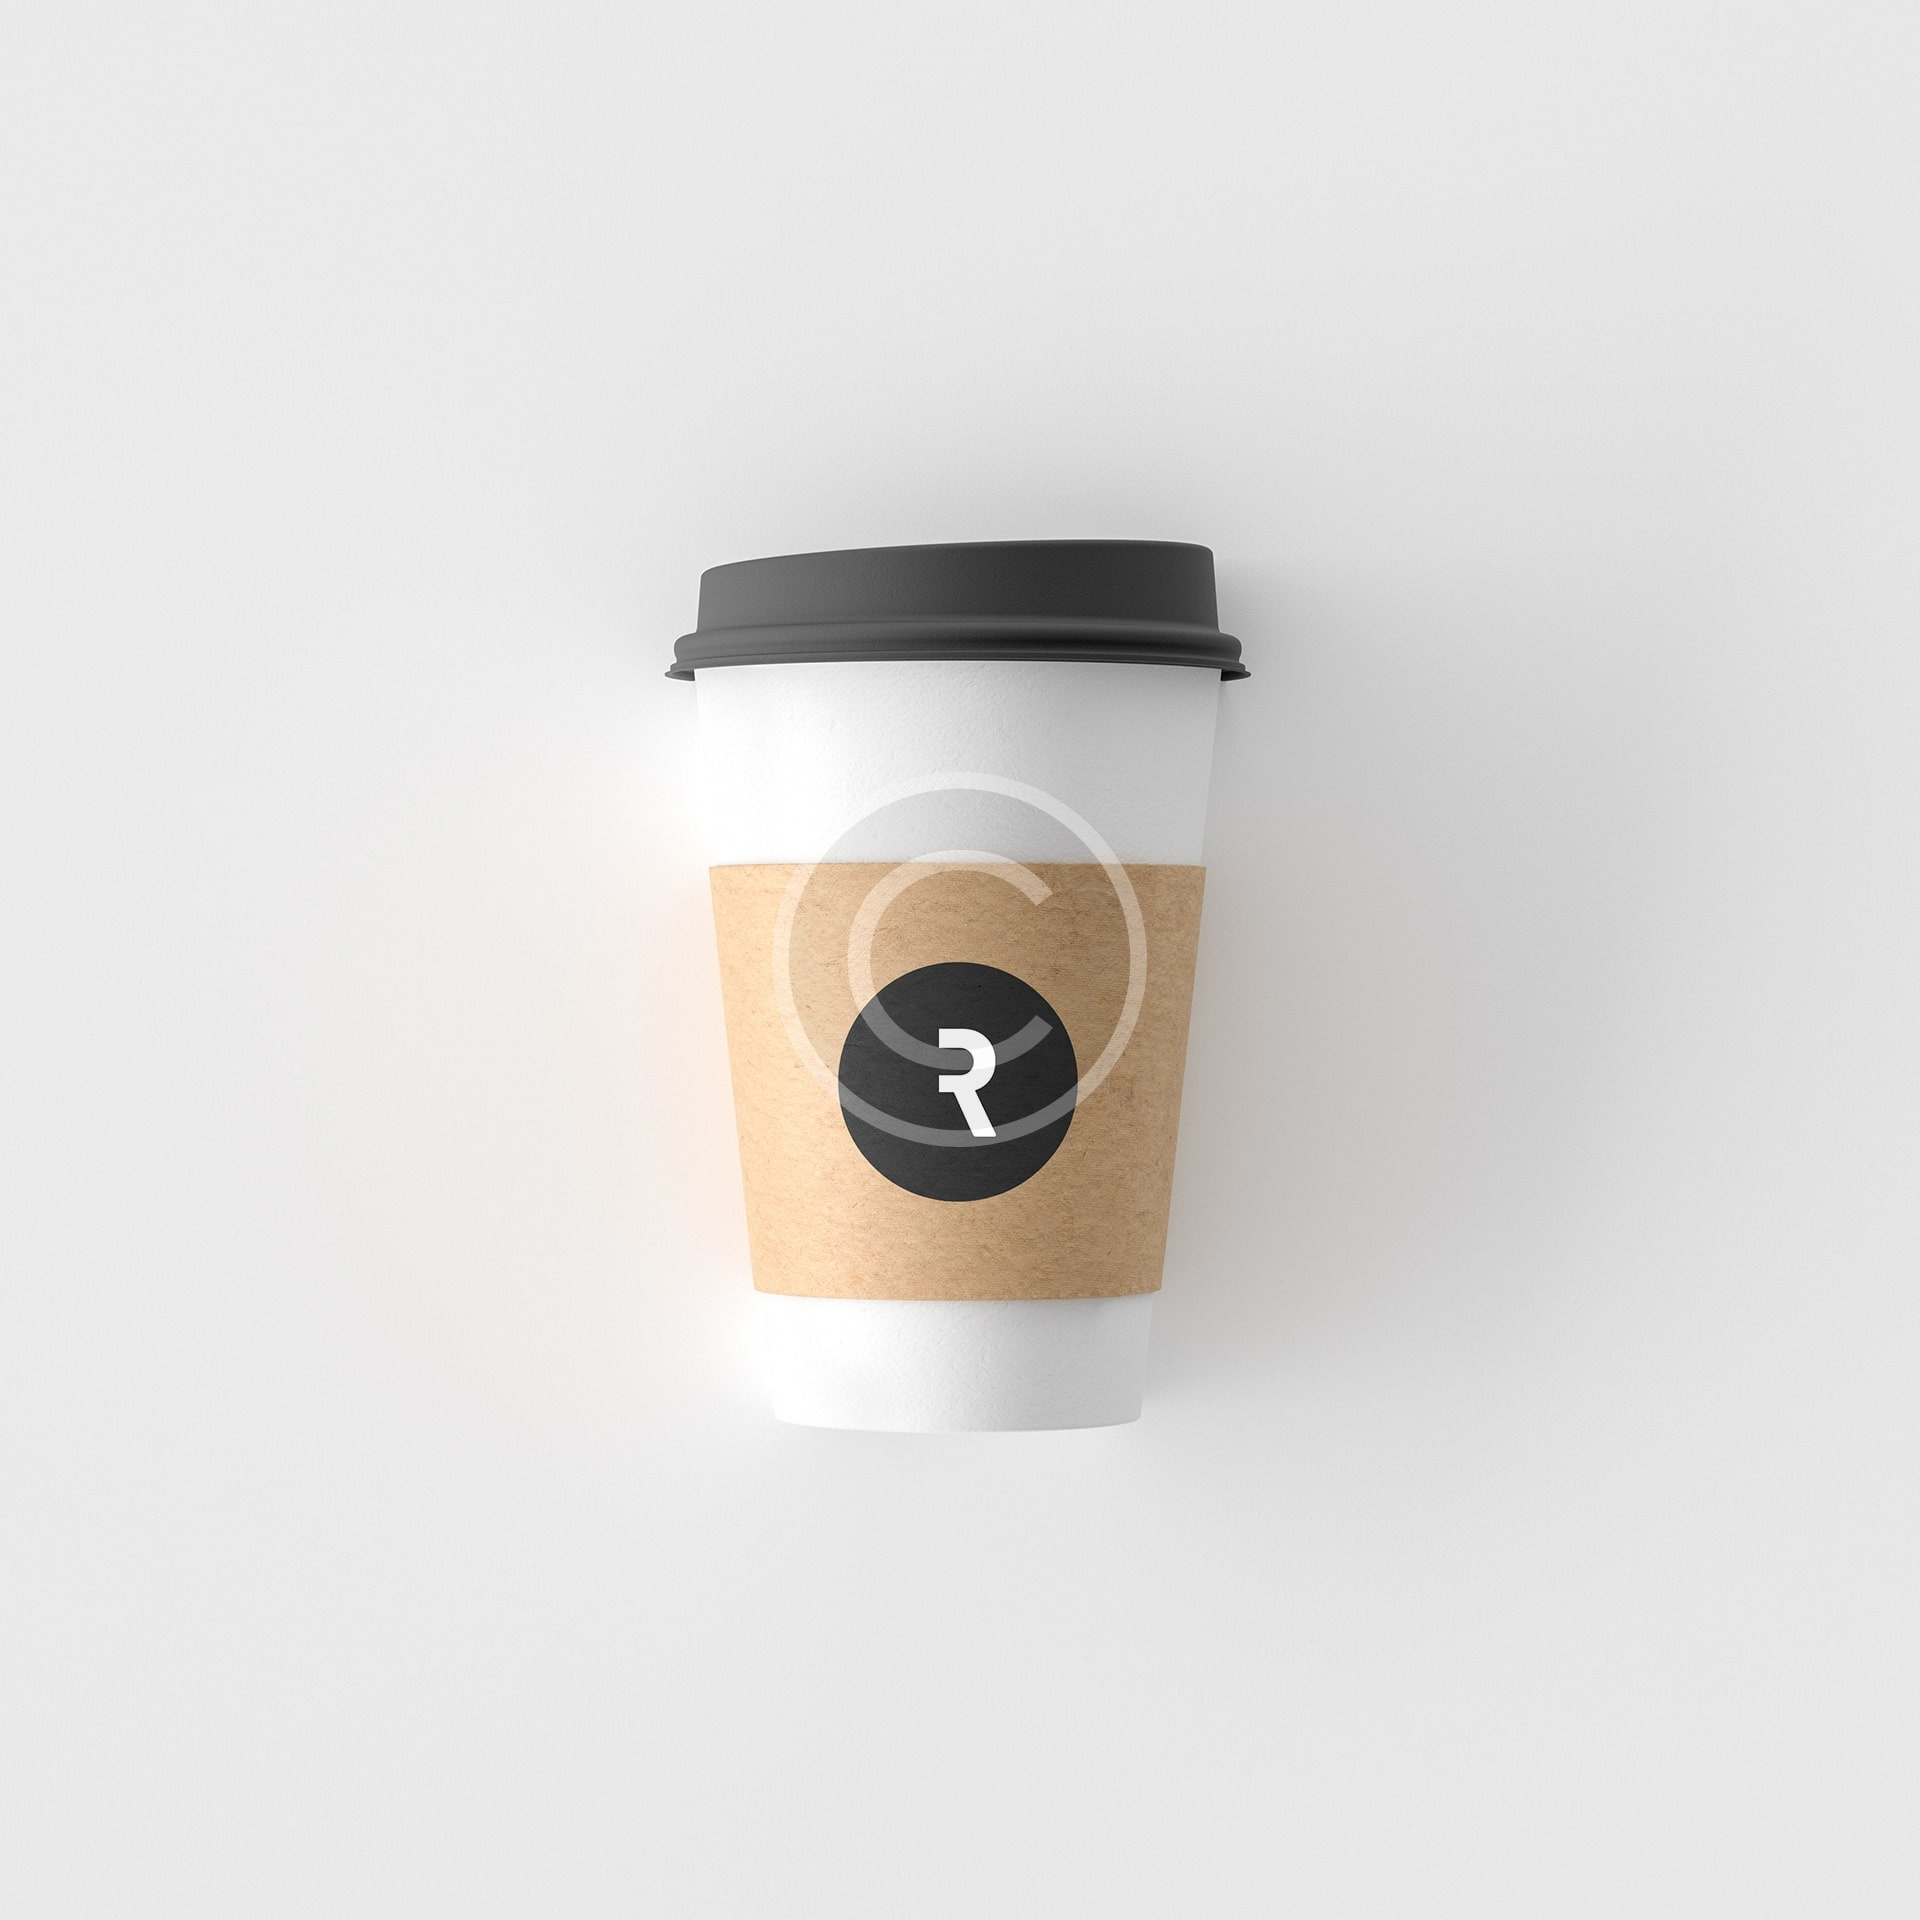 Cup Product Design